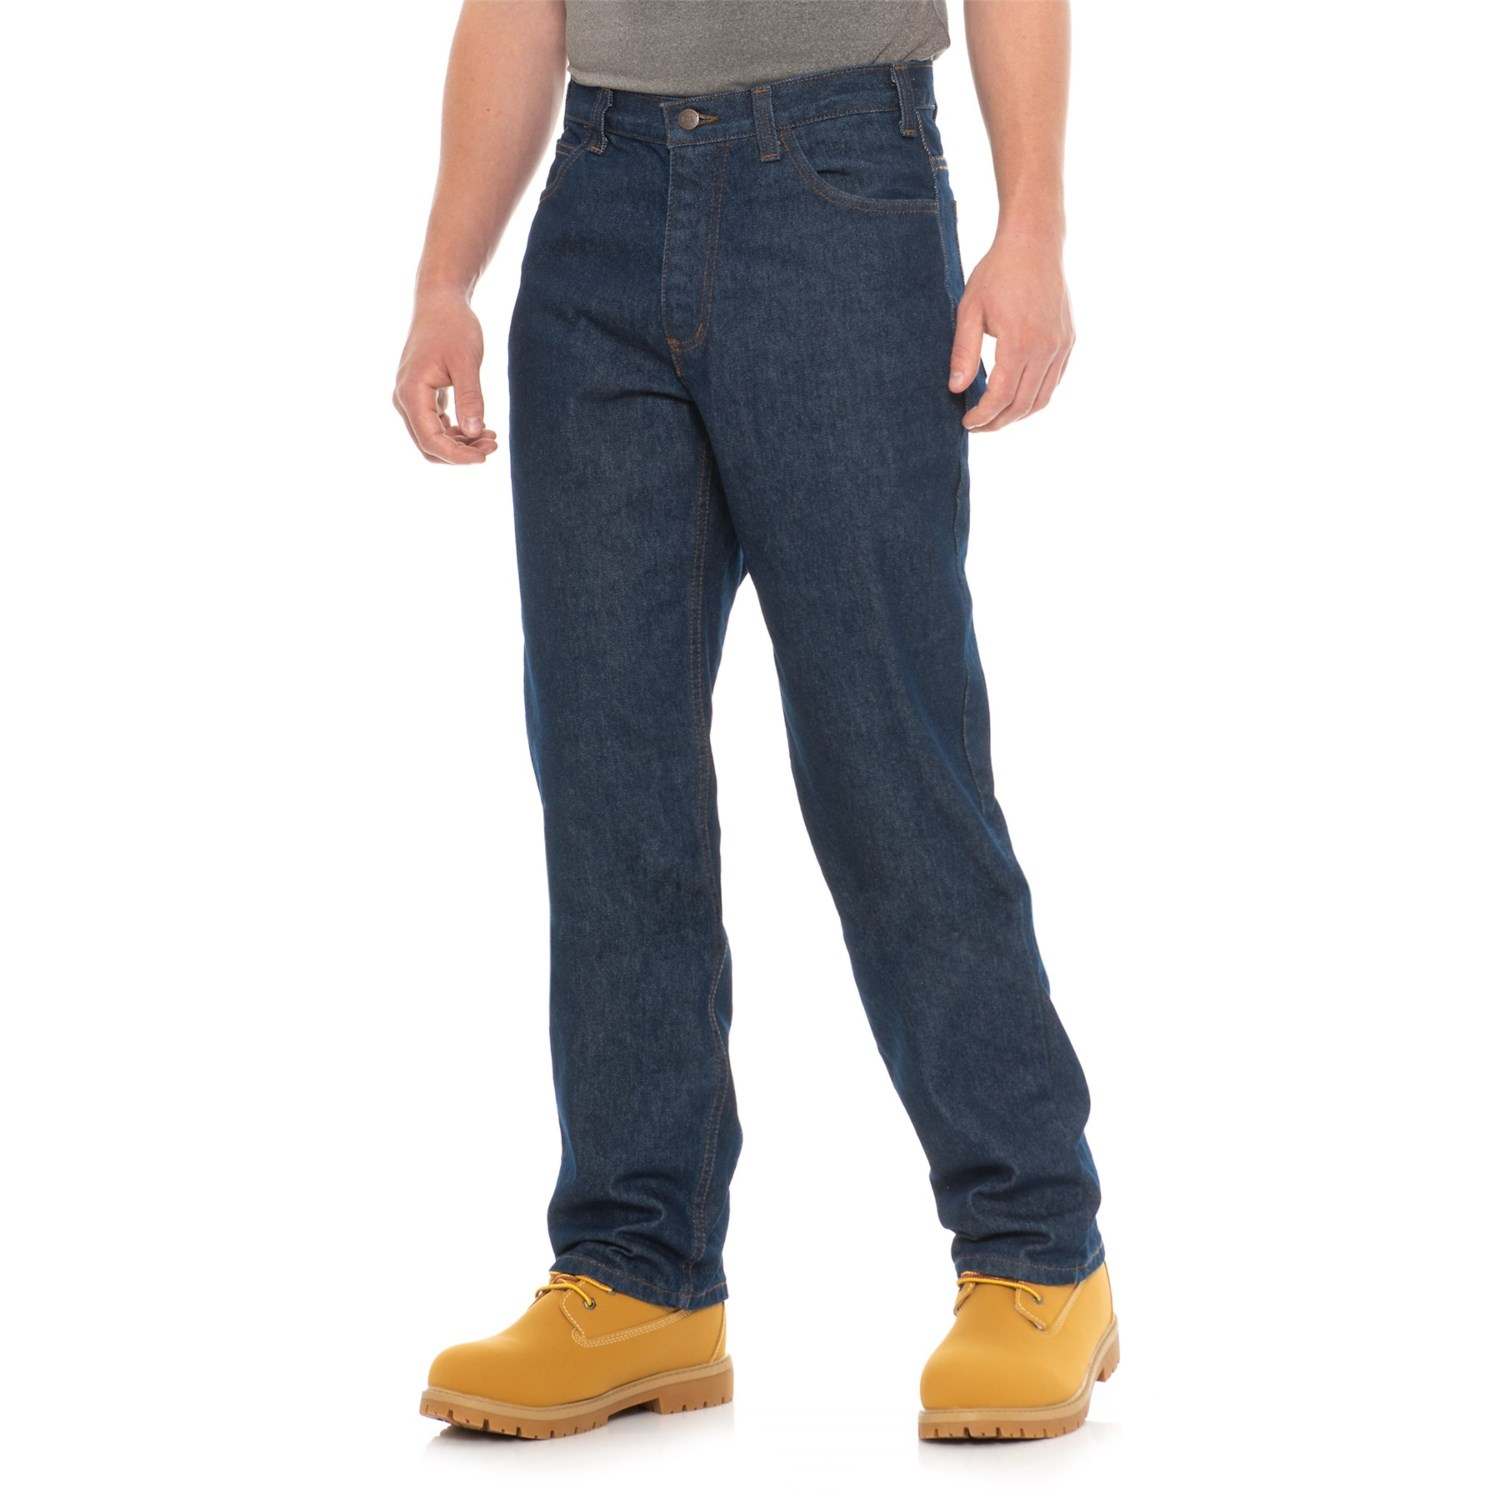 5802b614e212 Tough Duck Flame-Resistant Work Jeans (For Men) in Indg ...